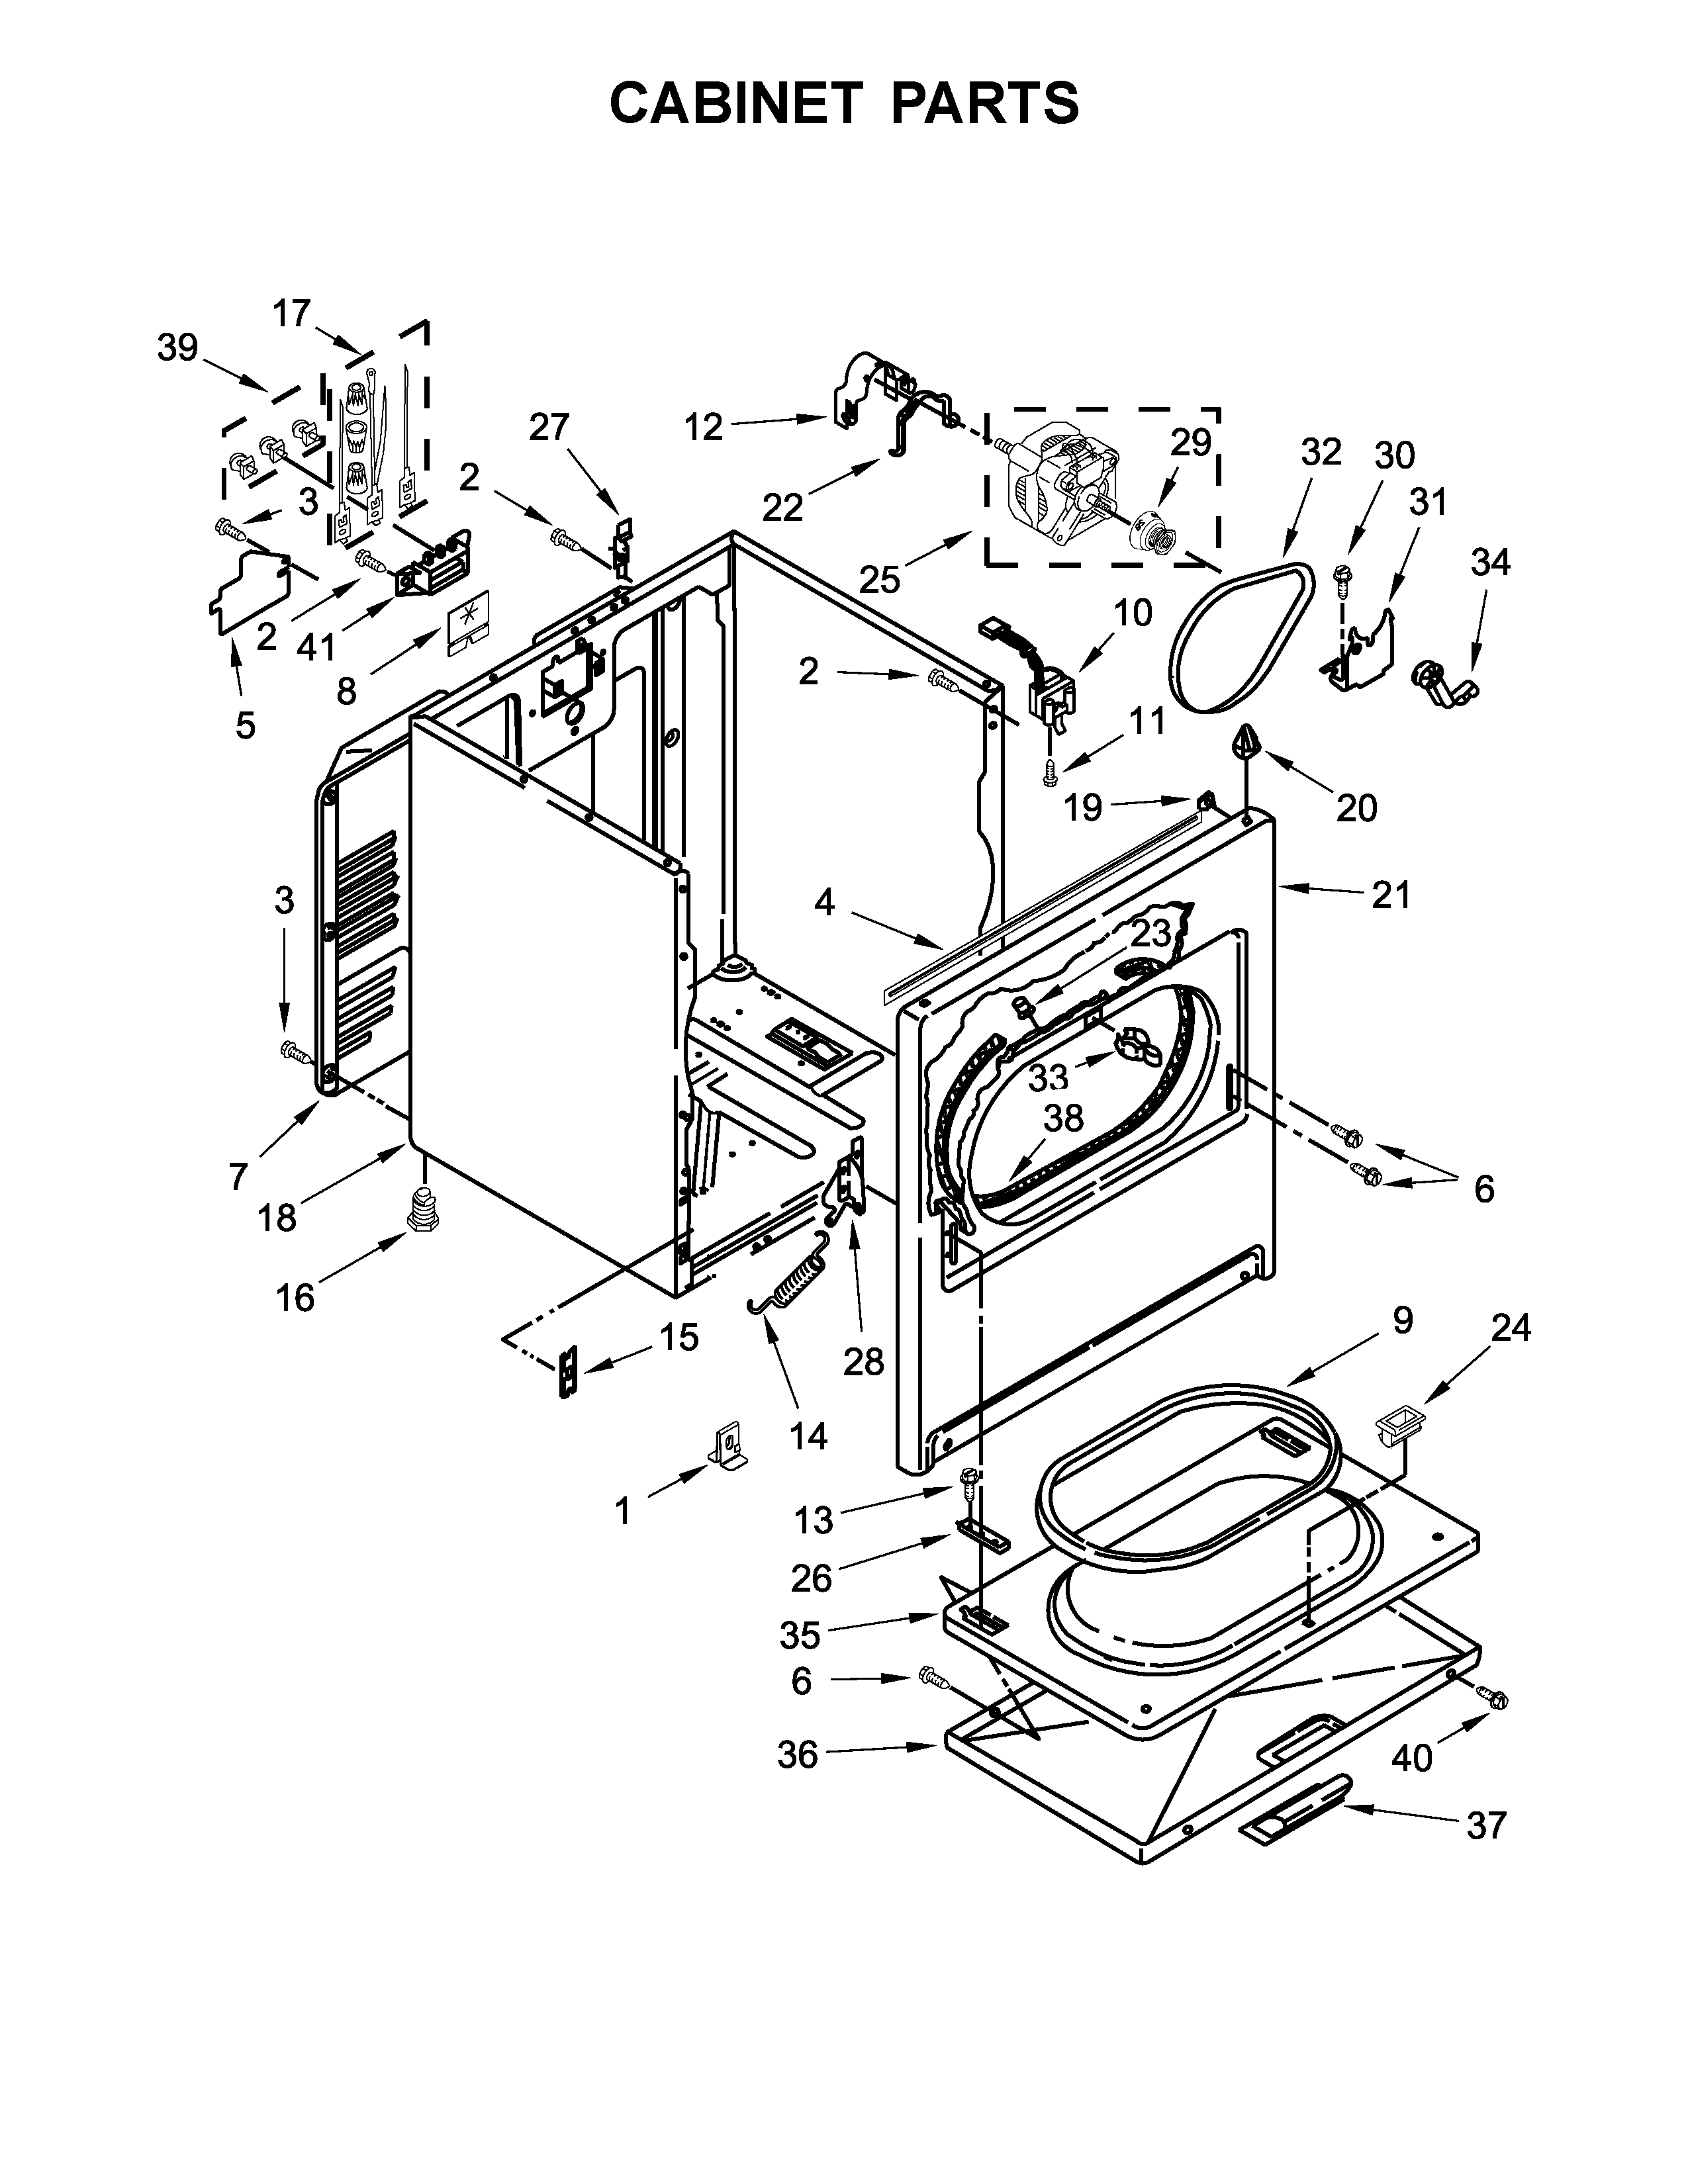 Crosley  Dryer  Cabinet parts